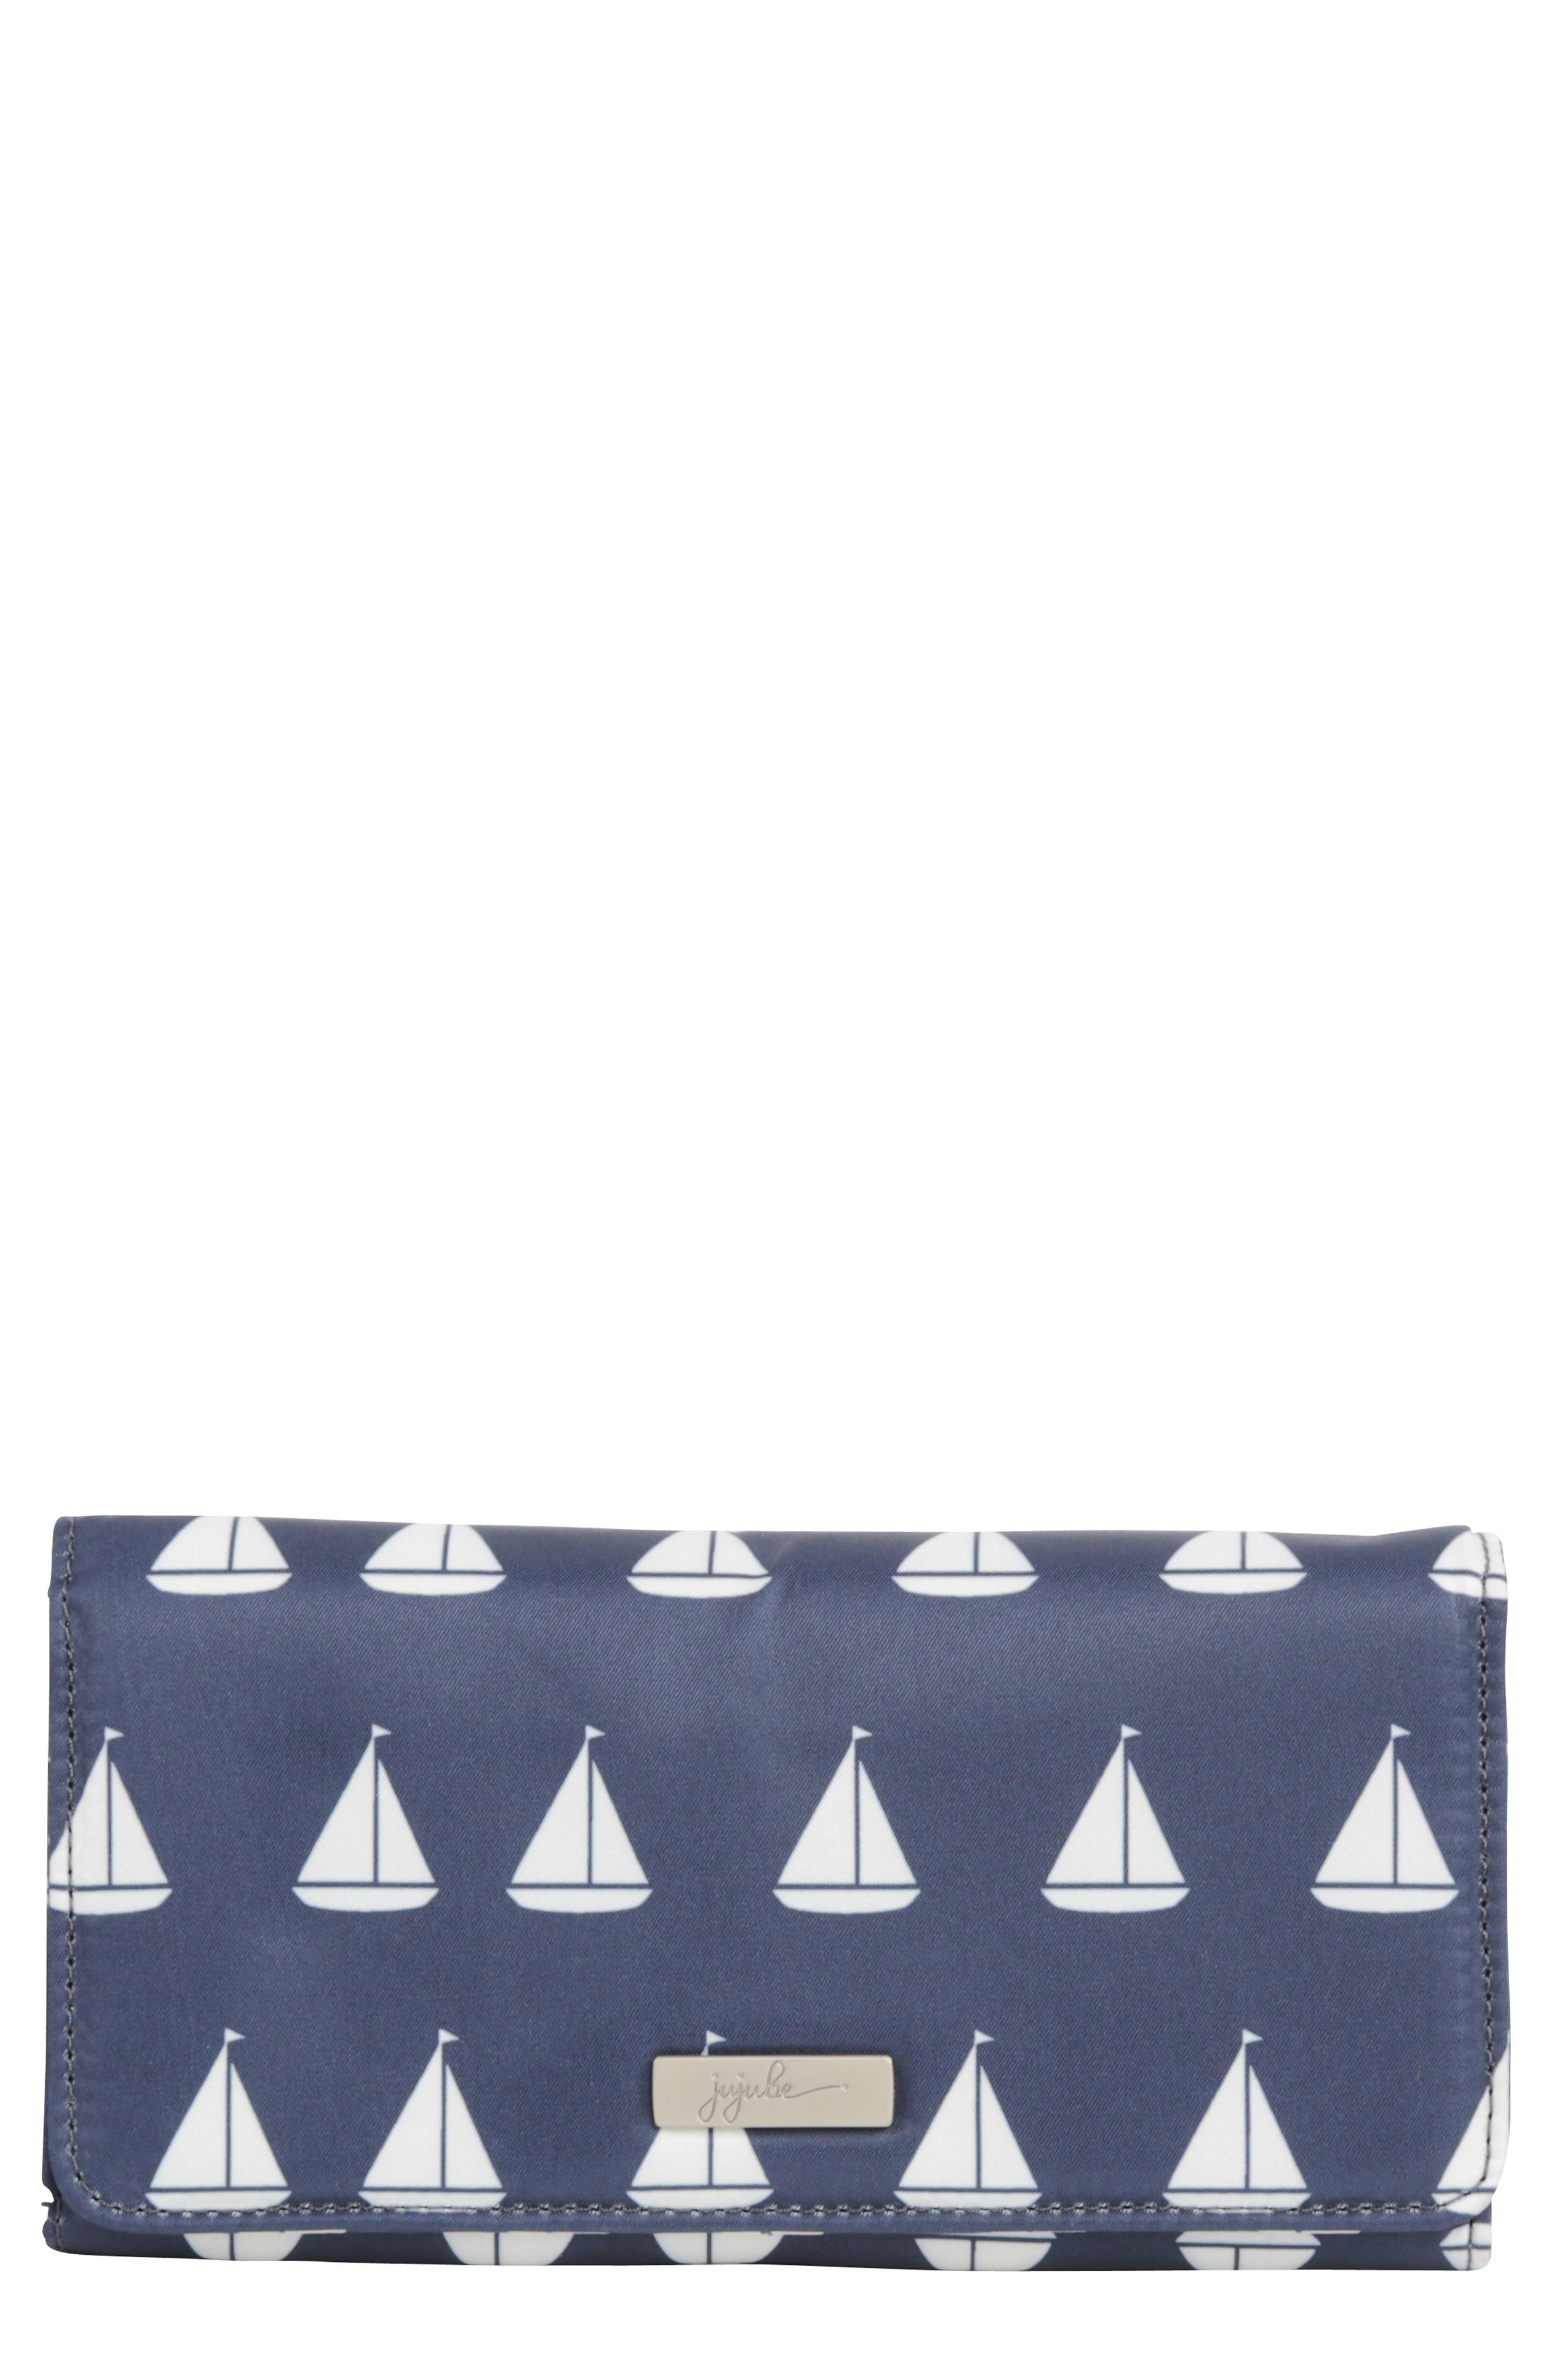 Alternate Image 1 Selected - Ju-Ju-Be Be Rich - Coastal Collection Trifold Clutch Wallet